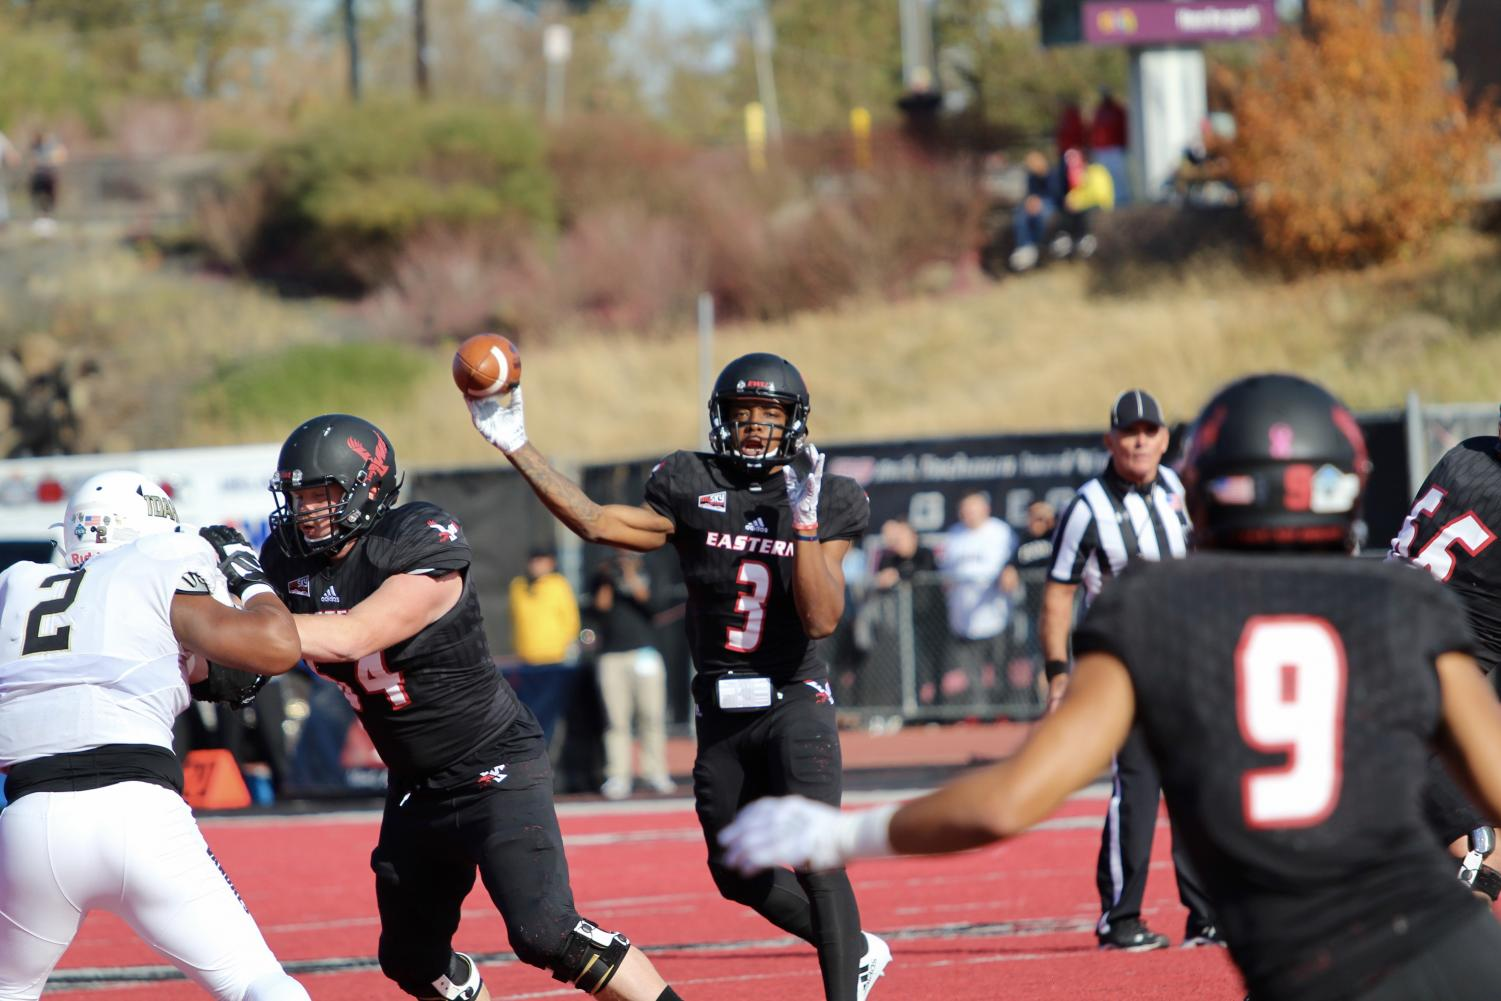 Sophomore Eric Barriere throws a pass against Idaho. Barriere threw for a career high 326 yards in the game.